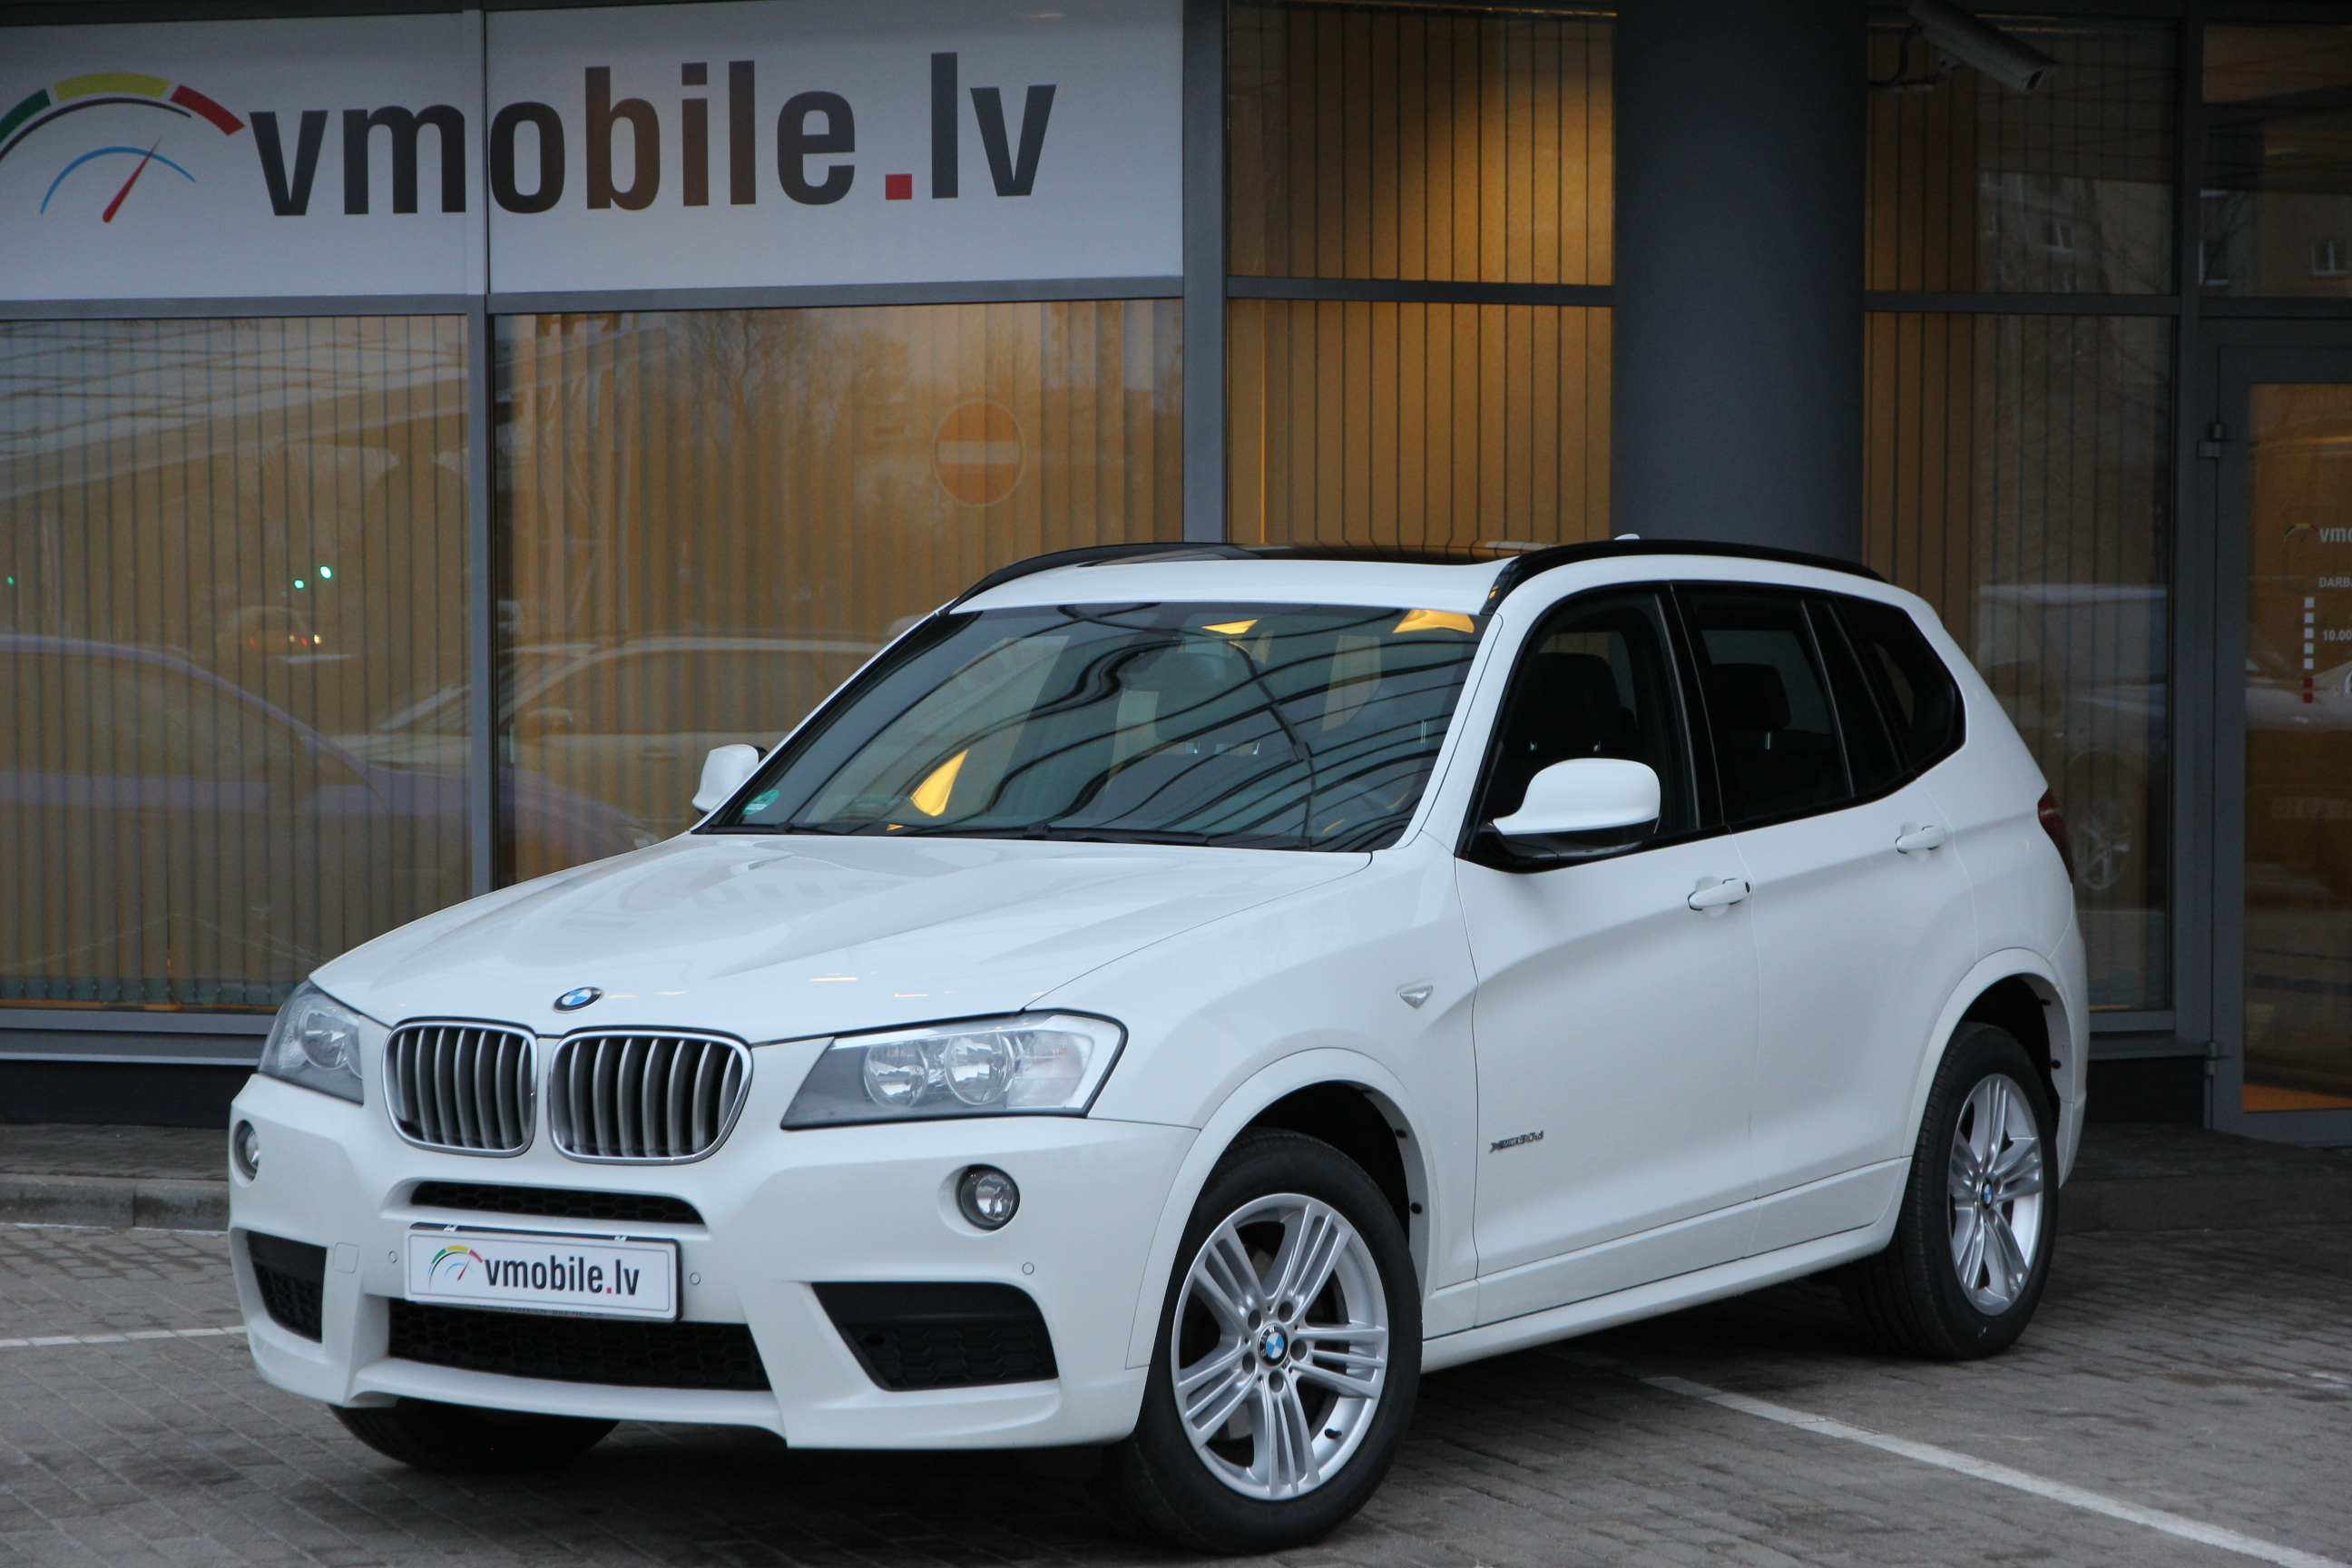 BMW X3 3.0d XDRIVE 258HP INDIVIDUAL M SPORT PACKAGE  PANORAMA GLASS ROOF